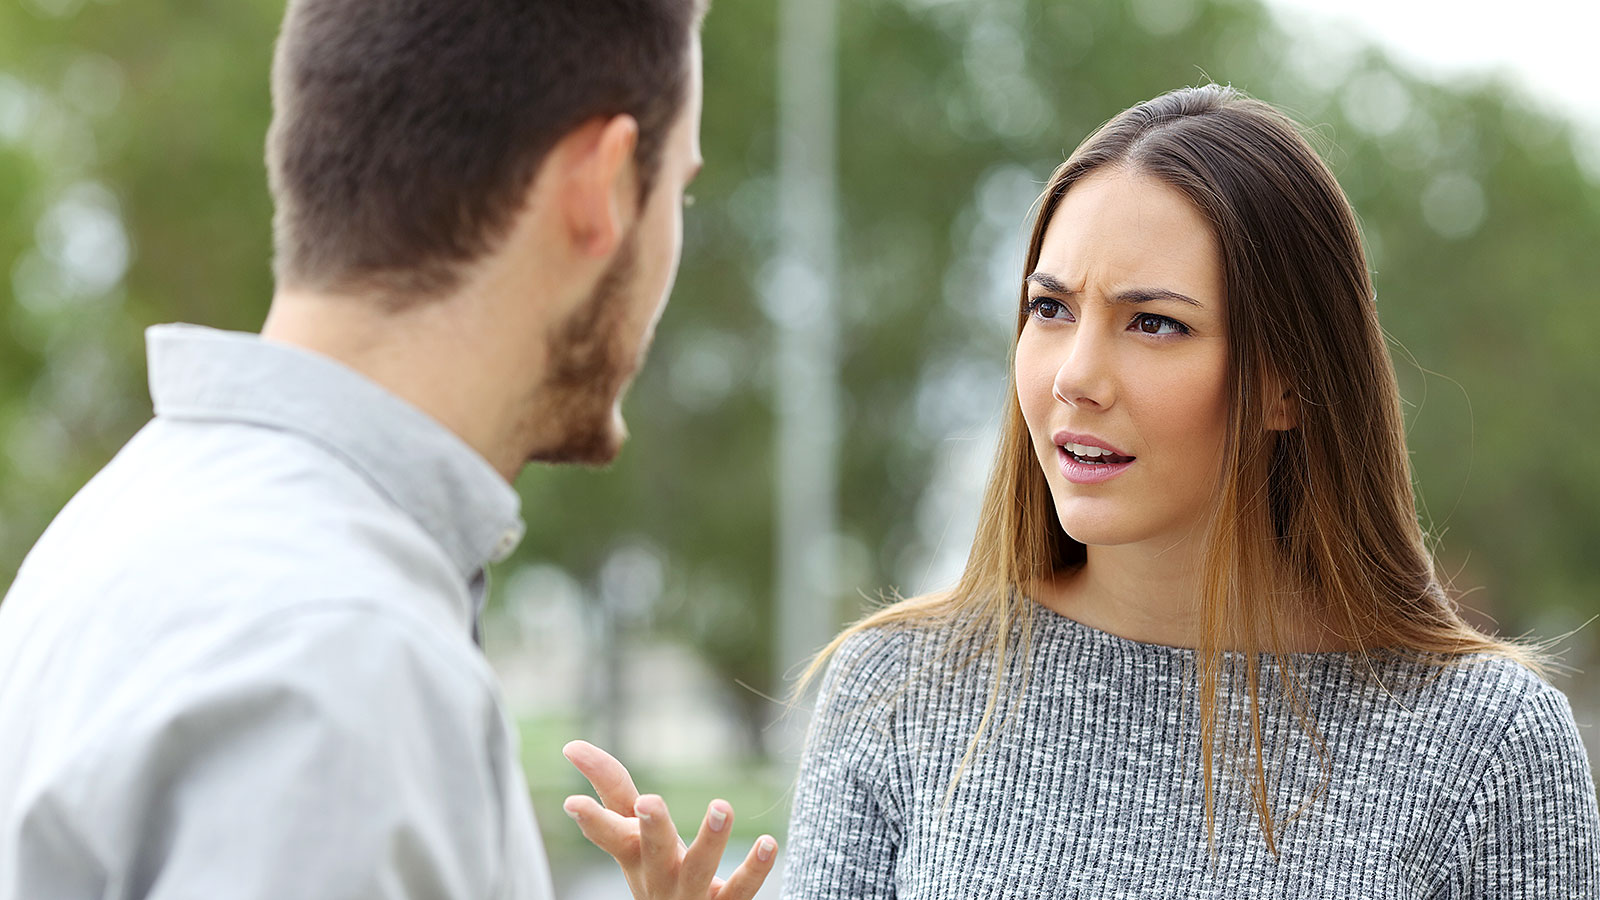 3 ways to be insufferable in conversation